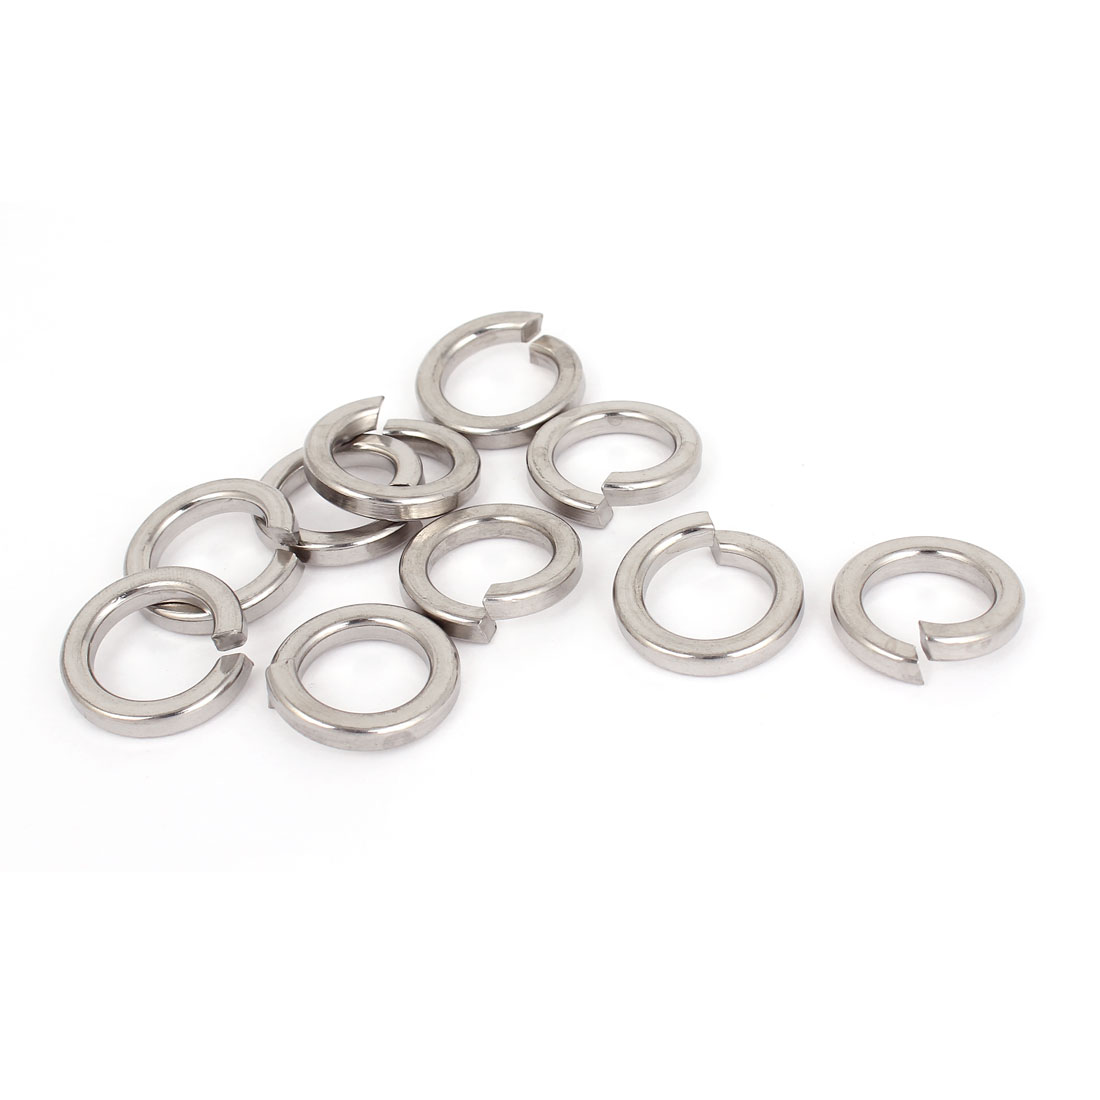 "10pcs 316 Stainless Steel Split Lock Spring Washers 5/8"" Screw Spacer Pad"